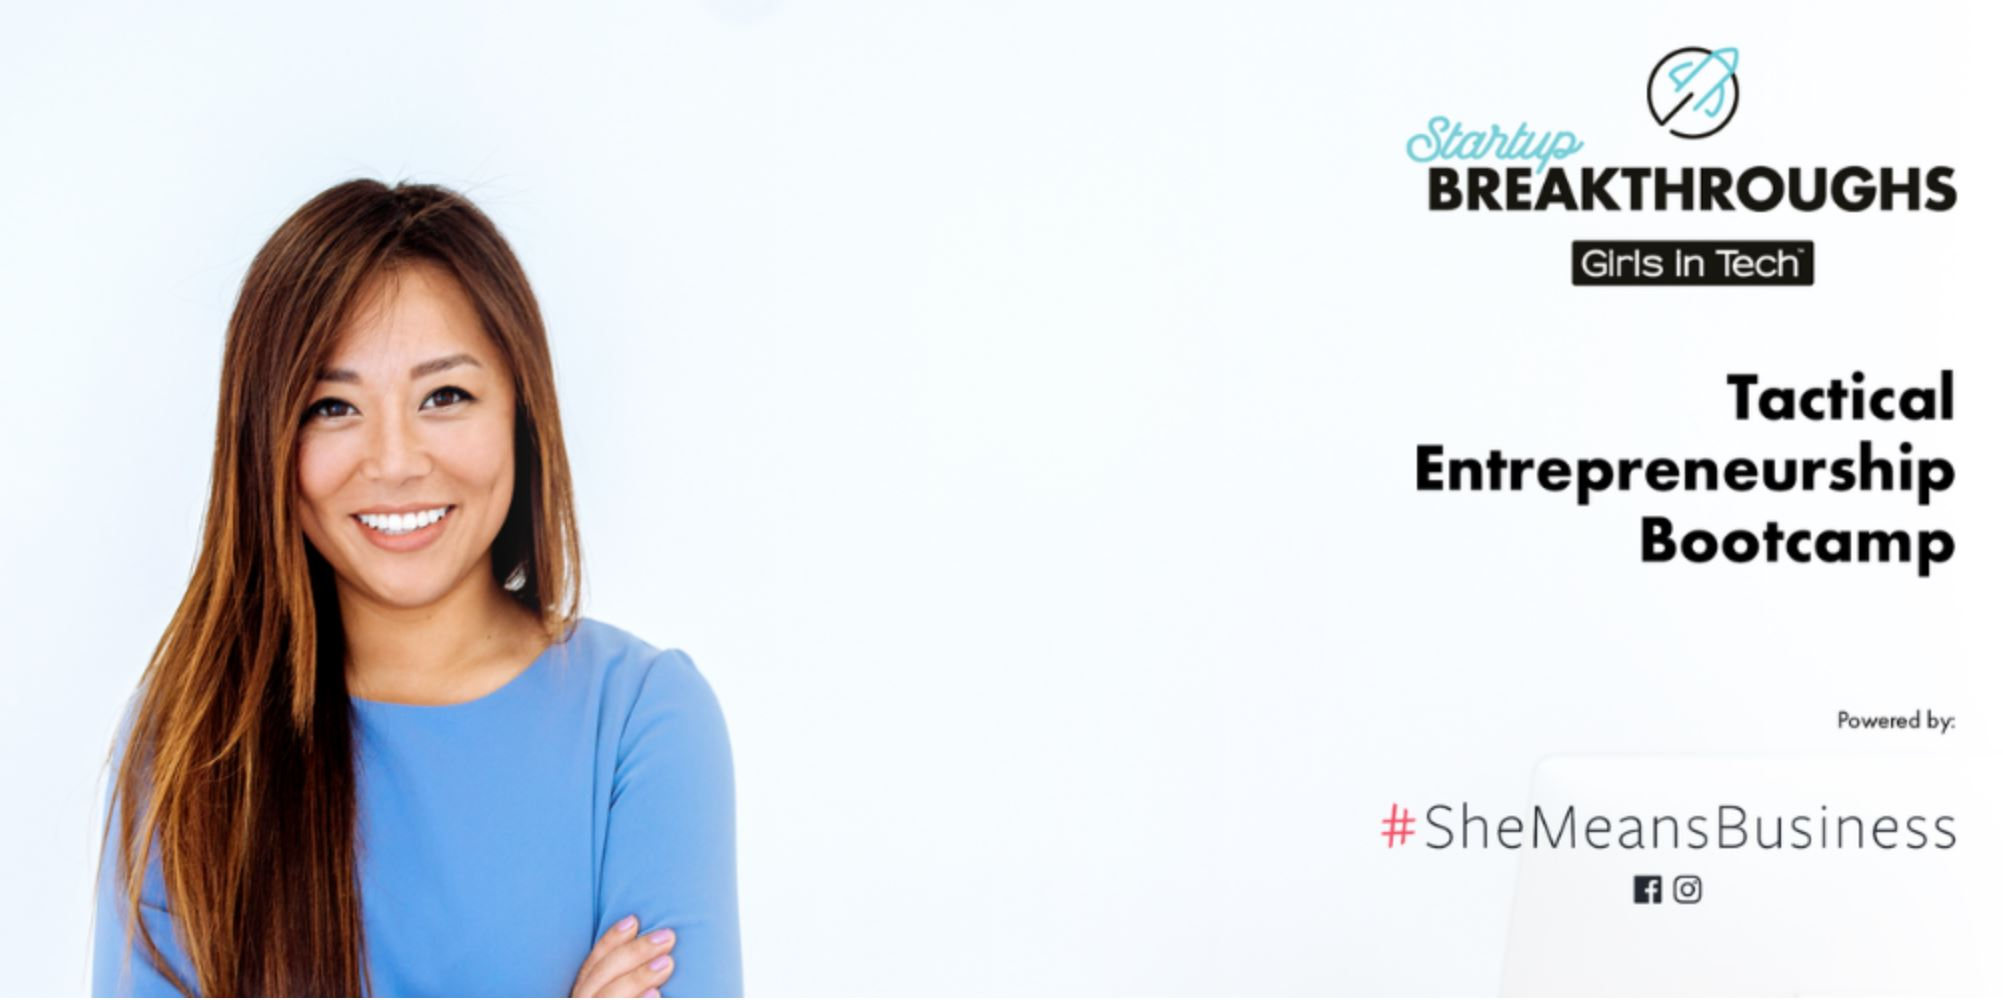 Startup Breakthroughs Bootcamp, powered by #SheMeansBusiness